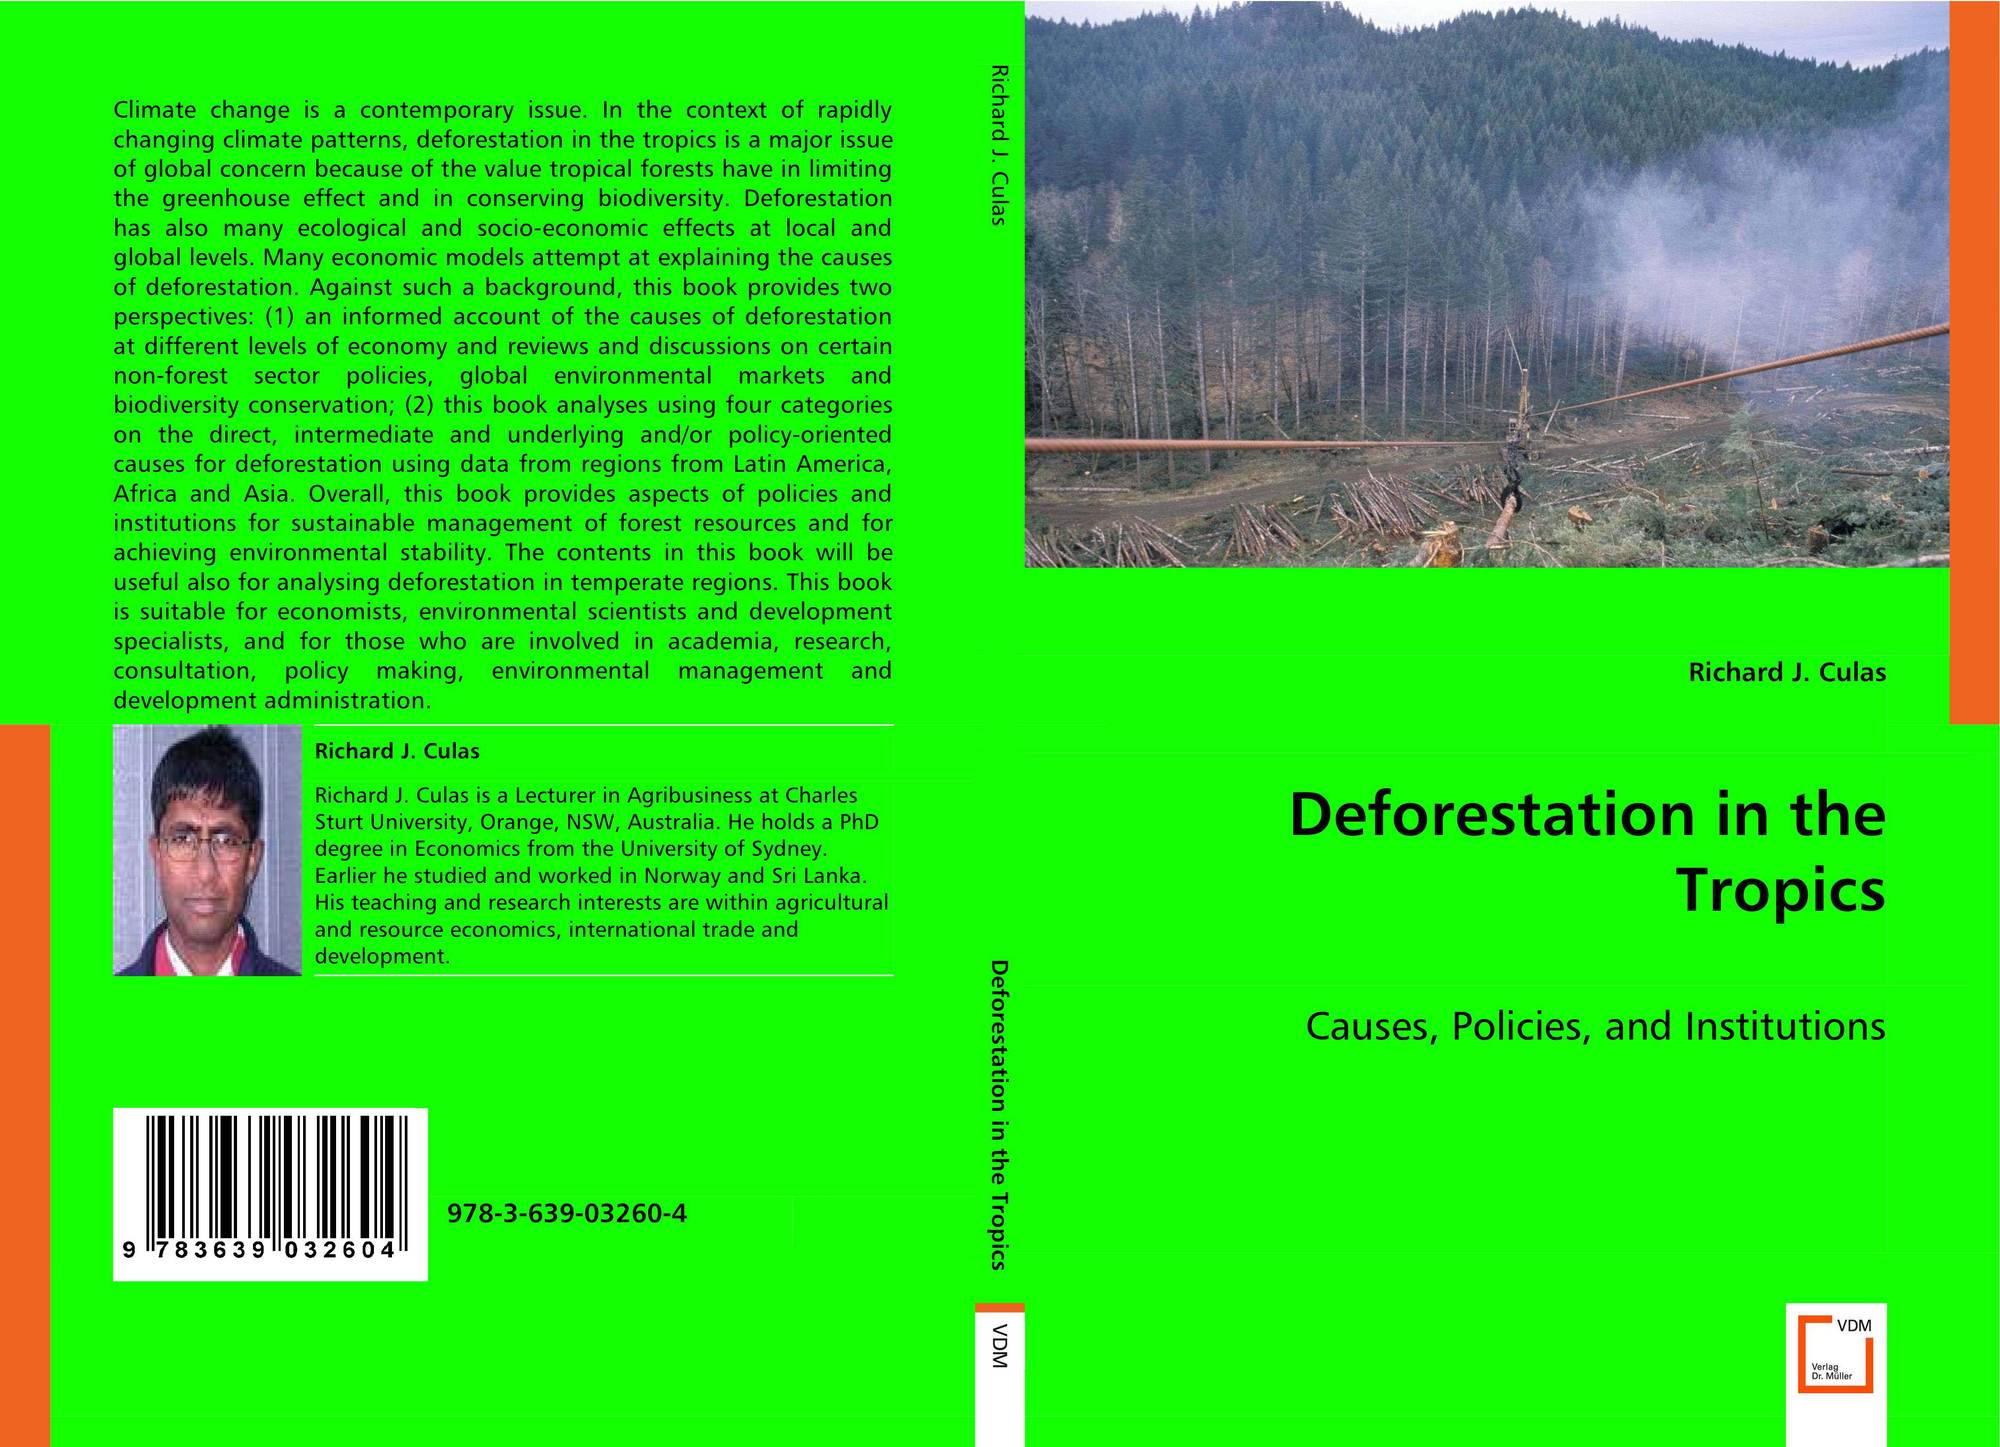 deforestation in the tropics Deforestation: deforestation, clearing or thinning of forests by humans to make the land available for other uses.